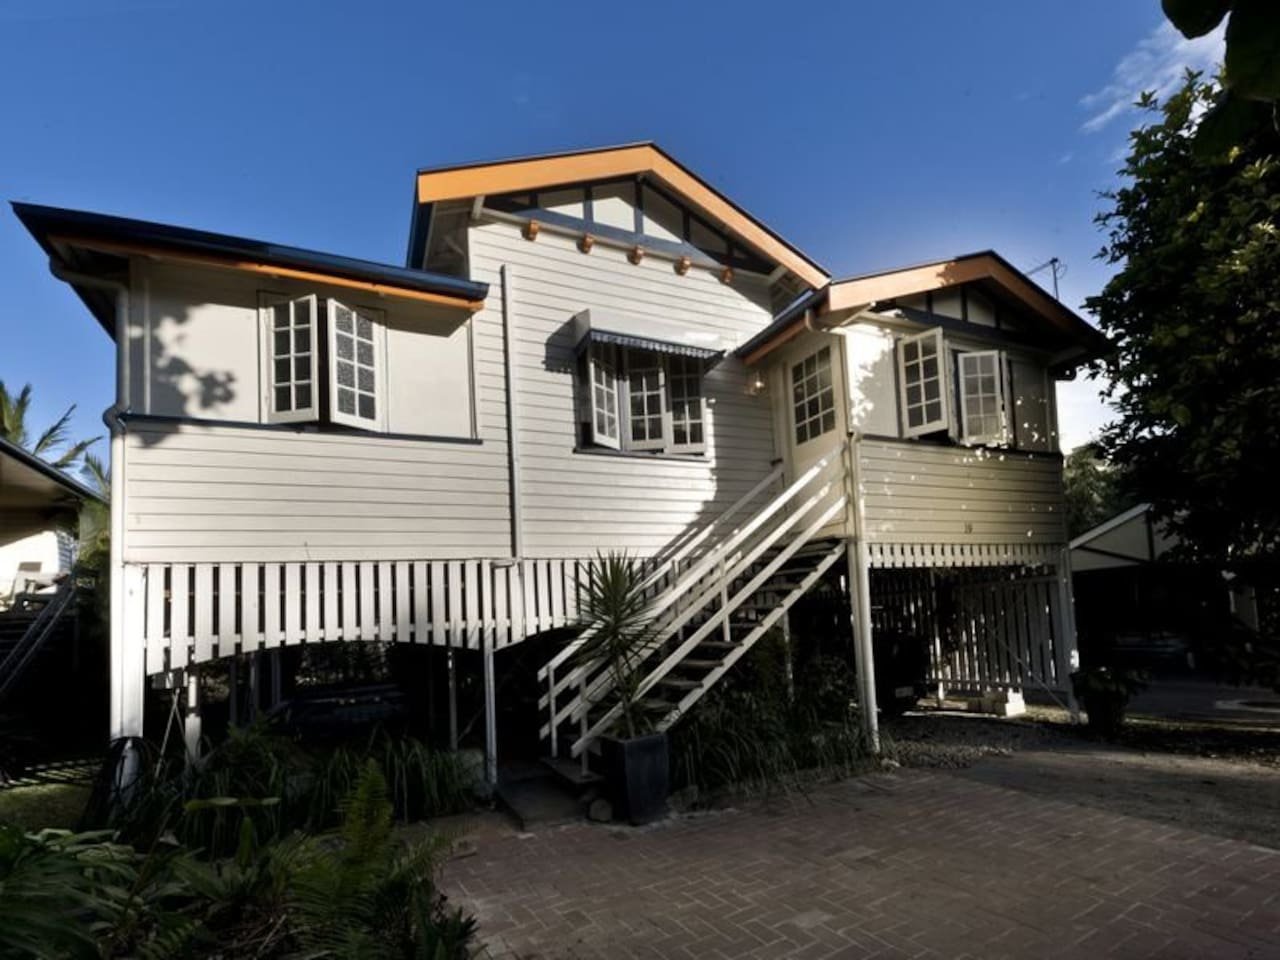 Beautiful and traditional Queenslander home